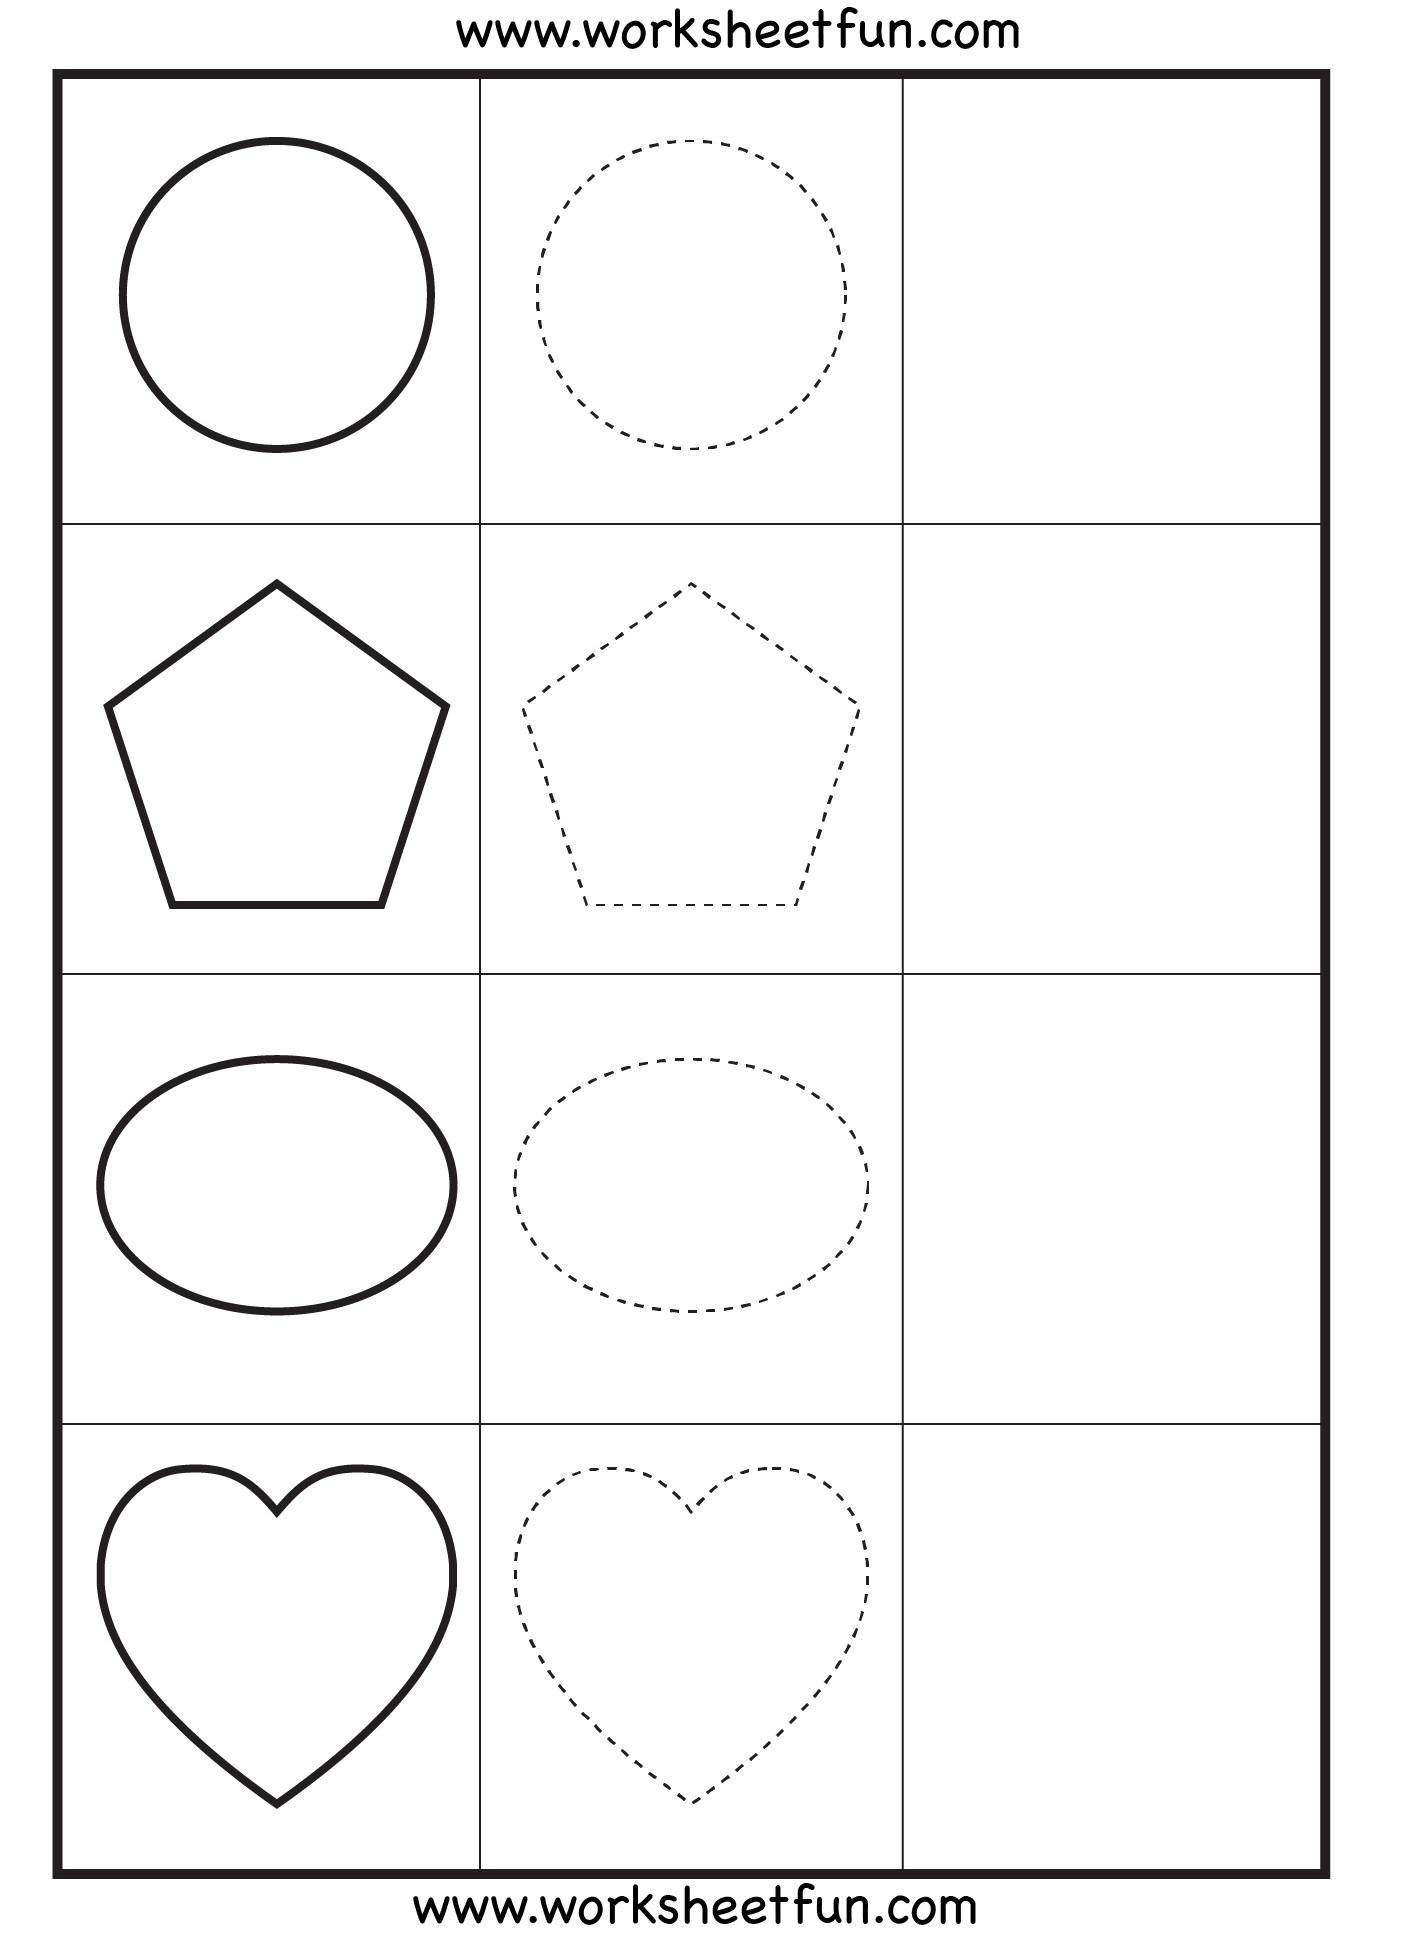 4 Year Old Preschool Worksheets